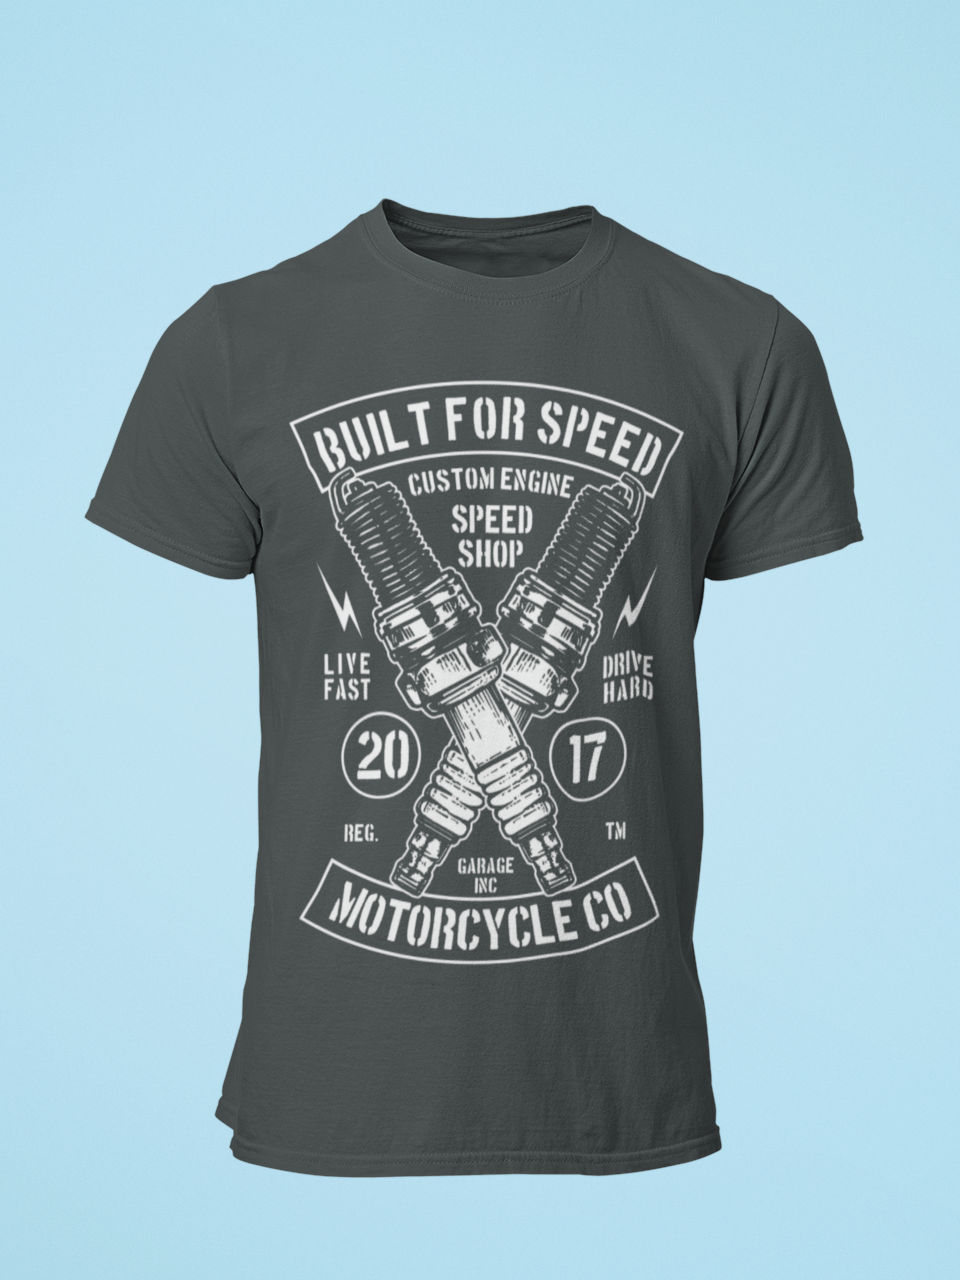 Built for Speed - Men's Half Sleeve T-Shirt - Steel Grey